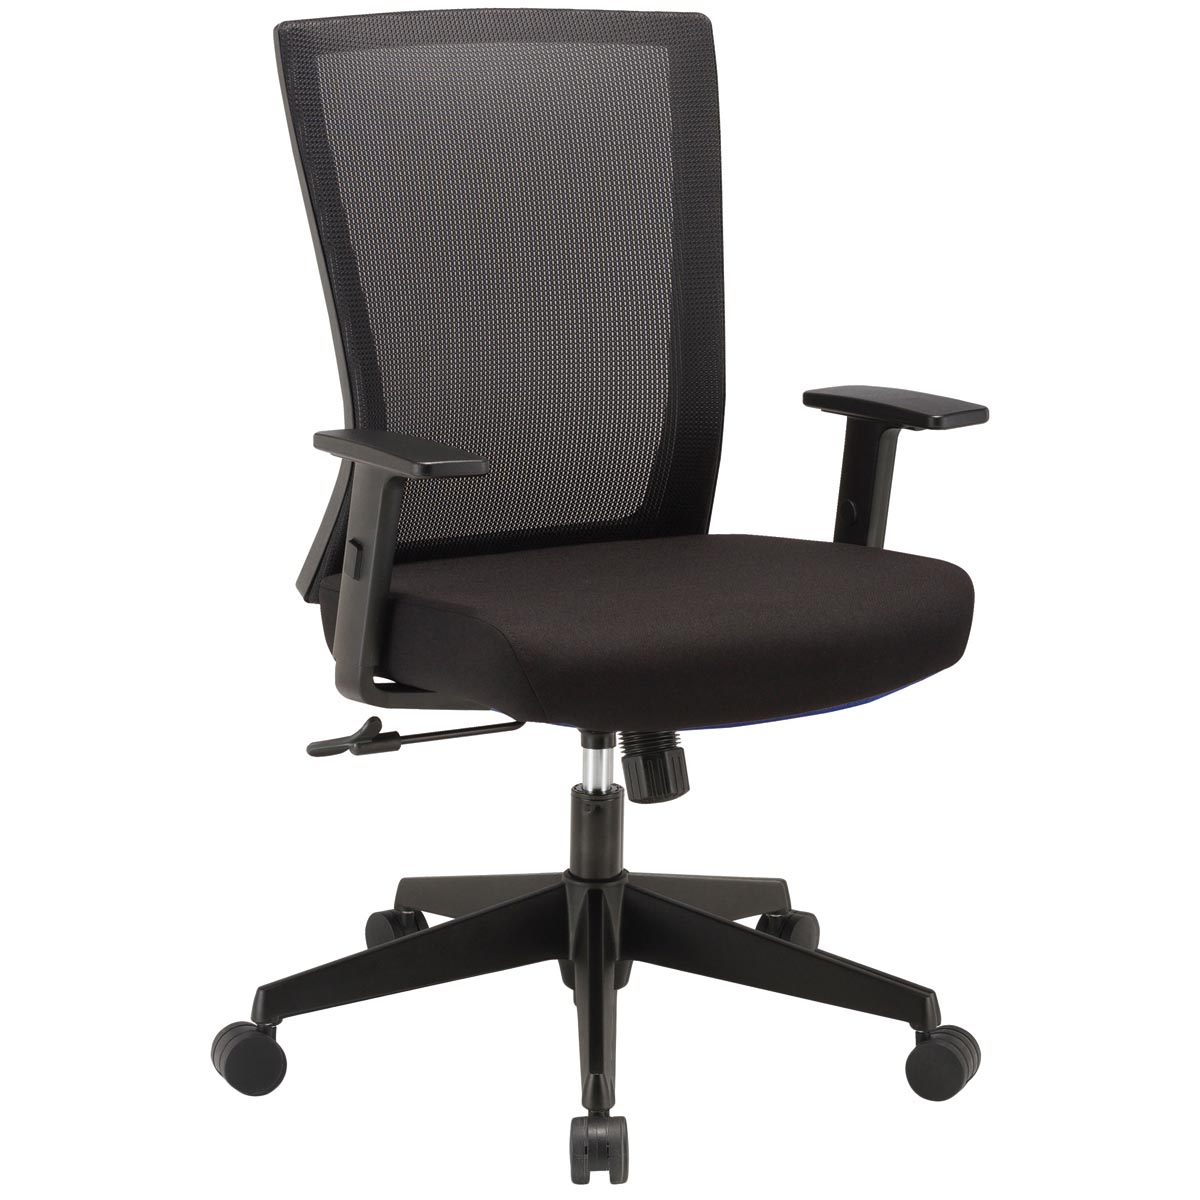 ofm posture task chair black banquet covers for sale office and chairs schoolsin